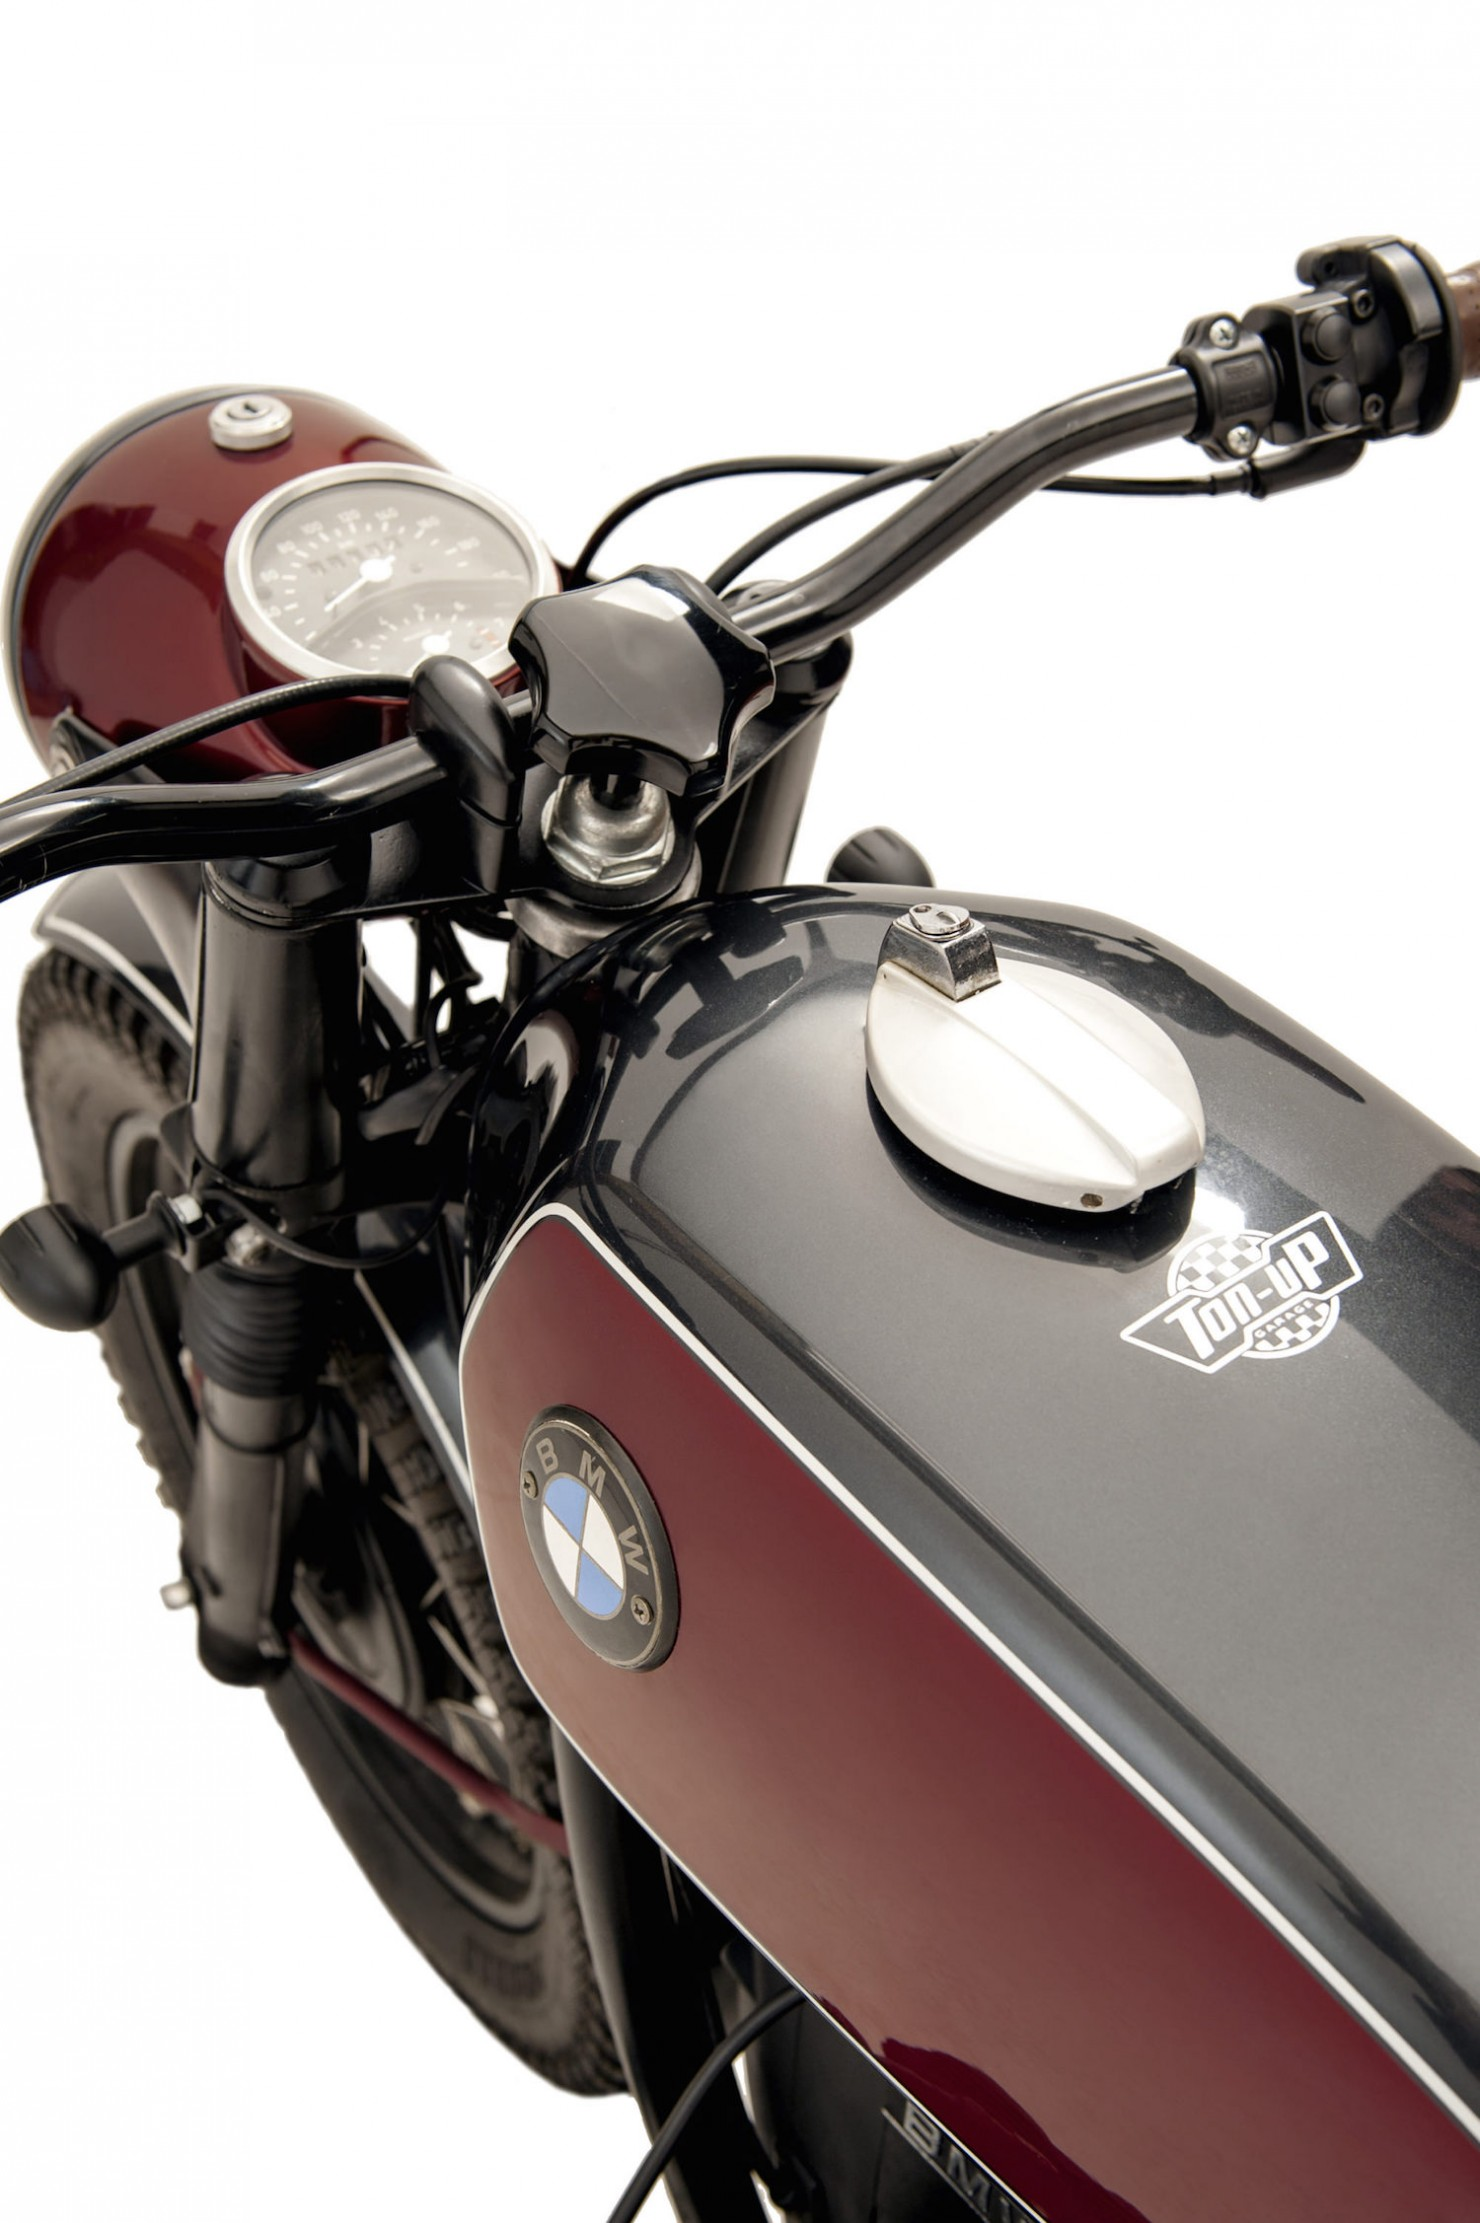 BMW-R755-Motorcycle-6